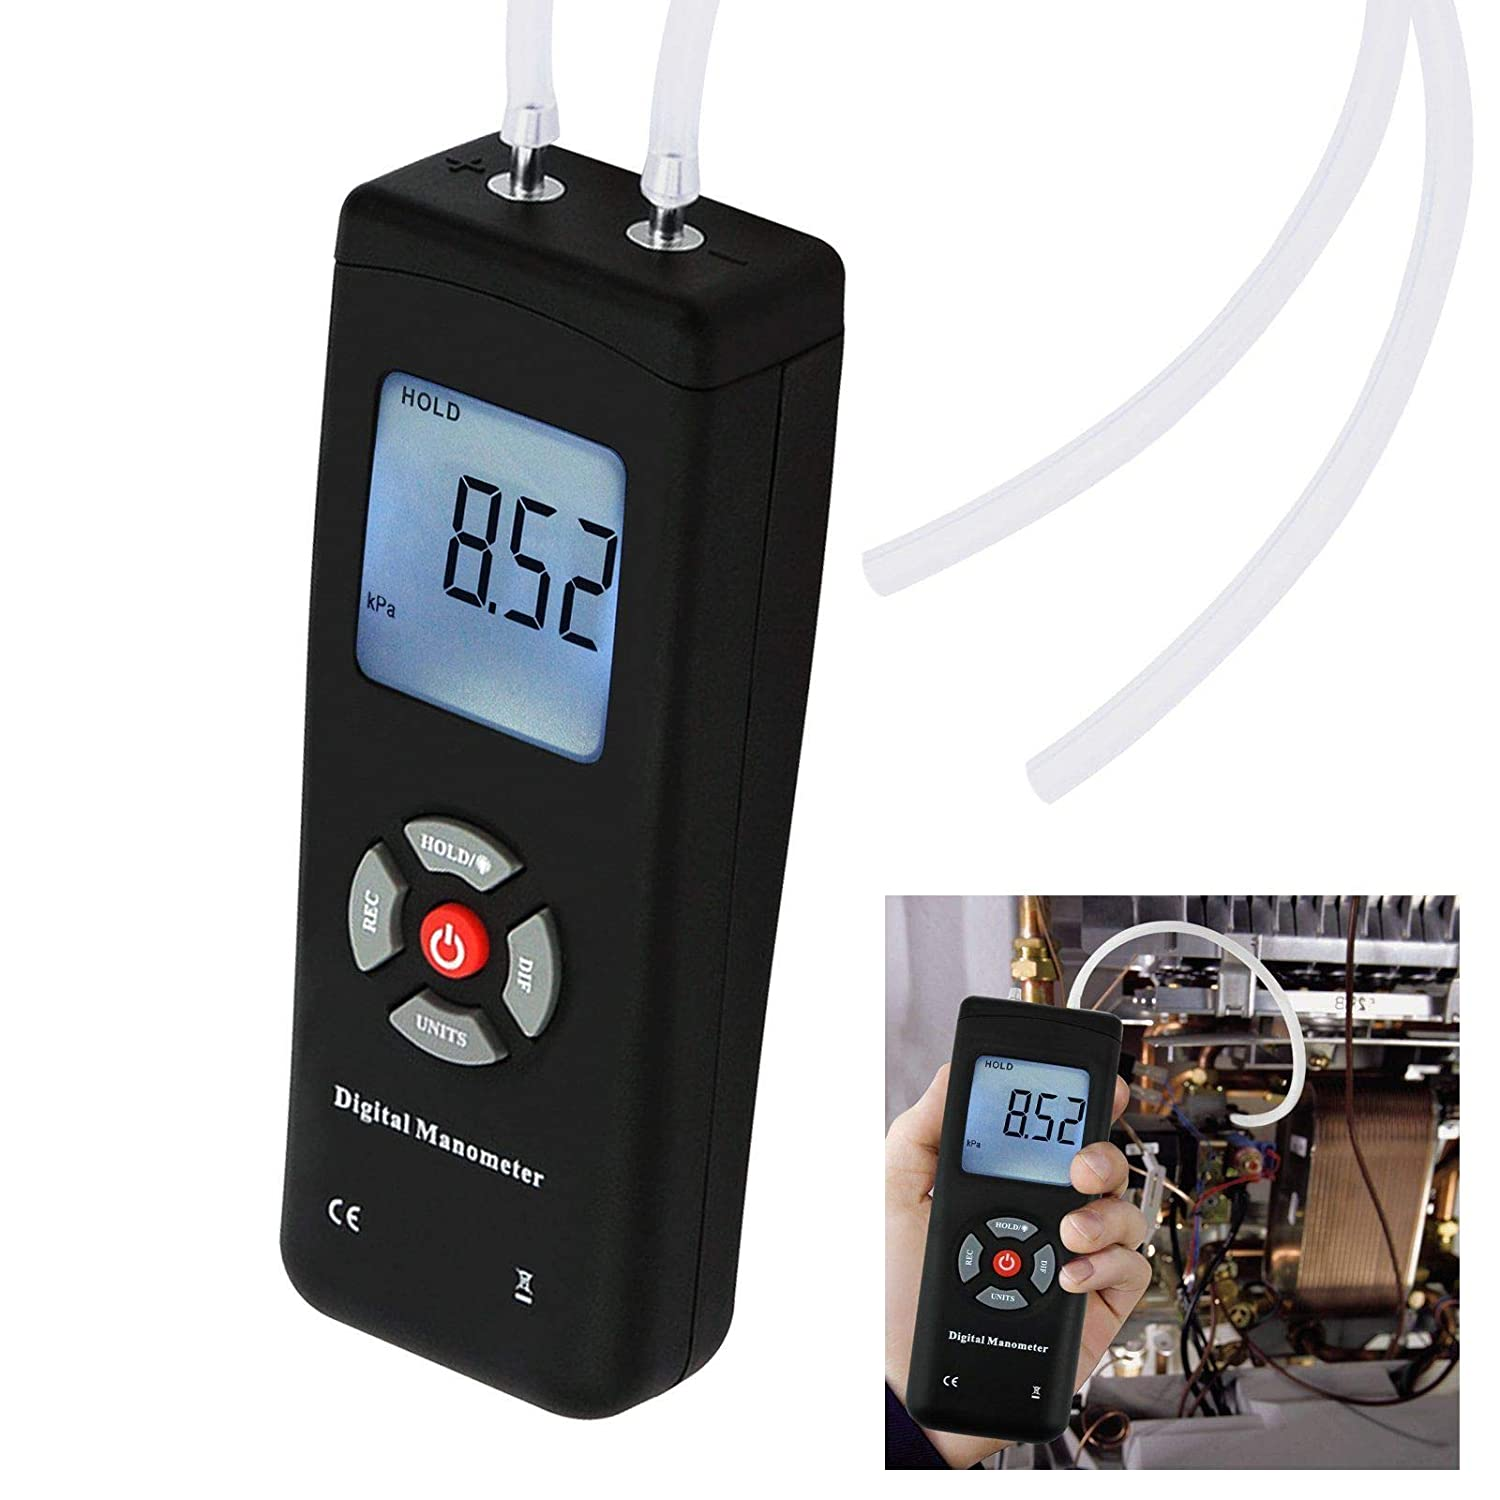 Digital Handheld Manometer HVAC Air Vacuum/Gas Differential Pressure Gauge Meter Tester 11 Units with Backlight, ±13.78kPa ±2PSI, 1-2 Pipes Ventilation Air Condition System Measurement